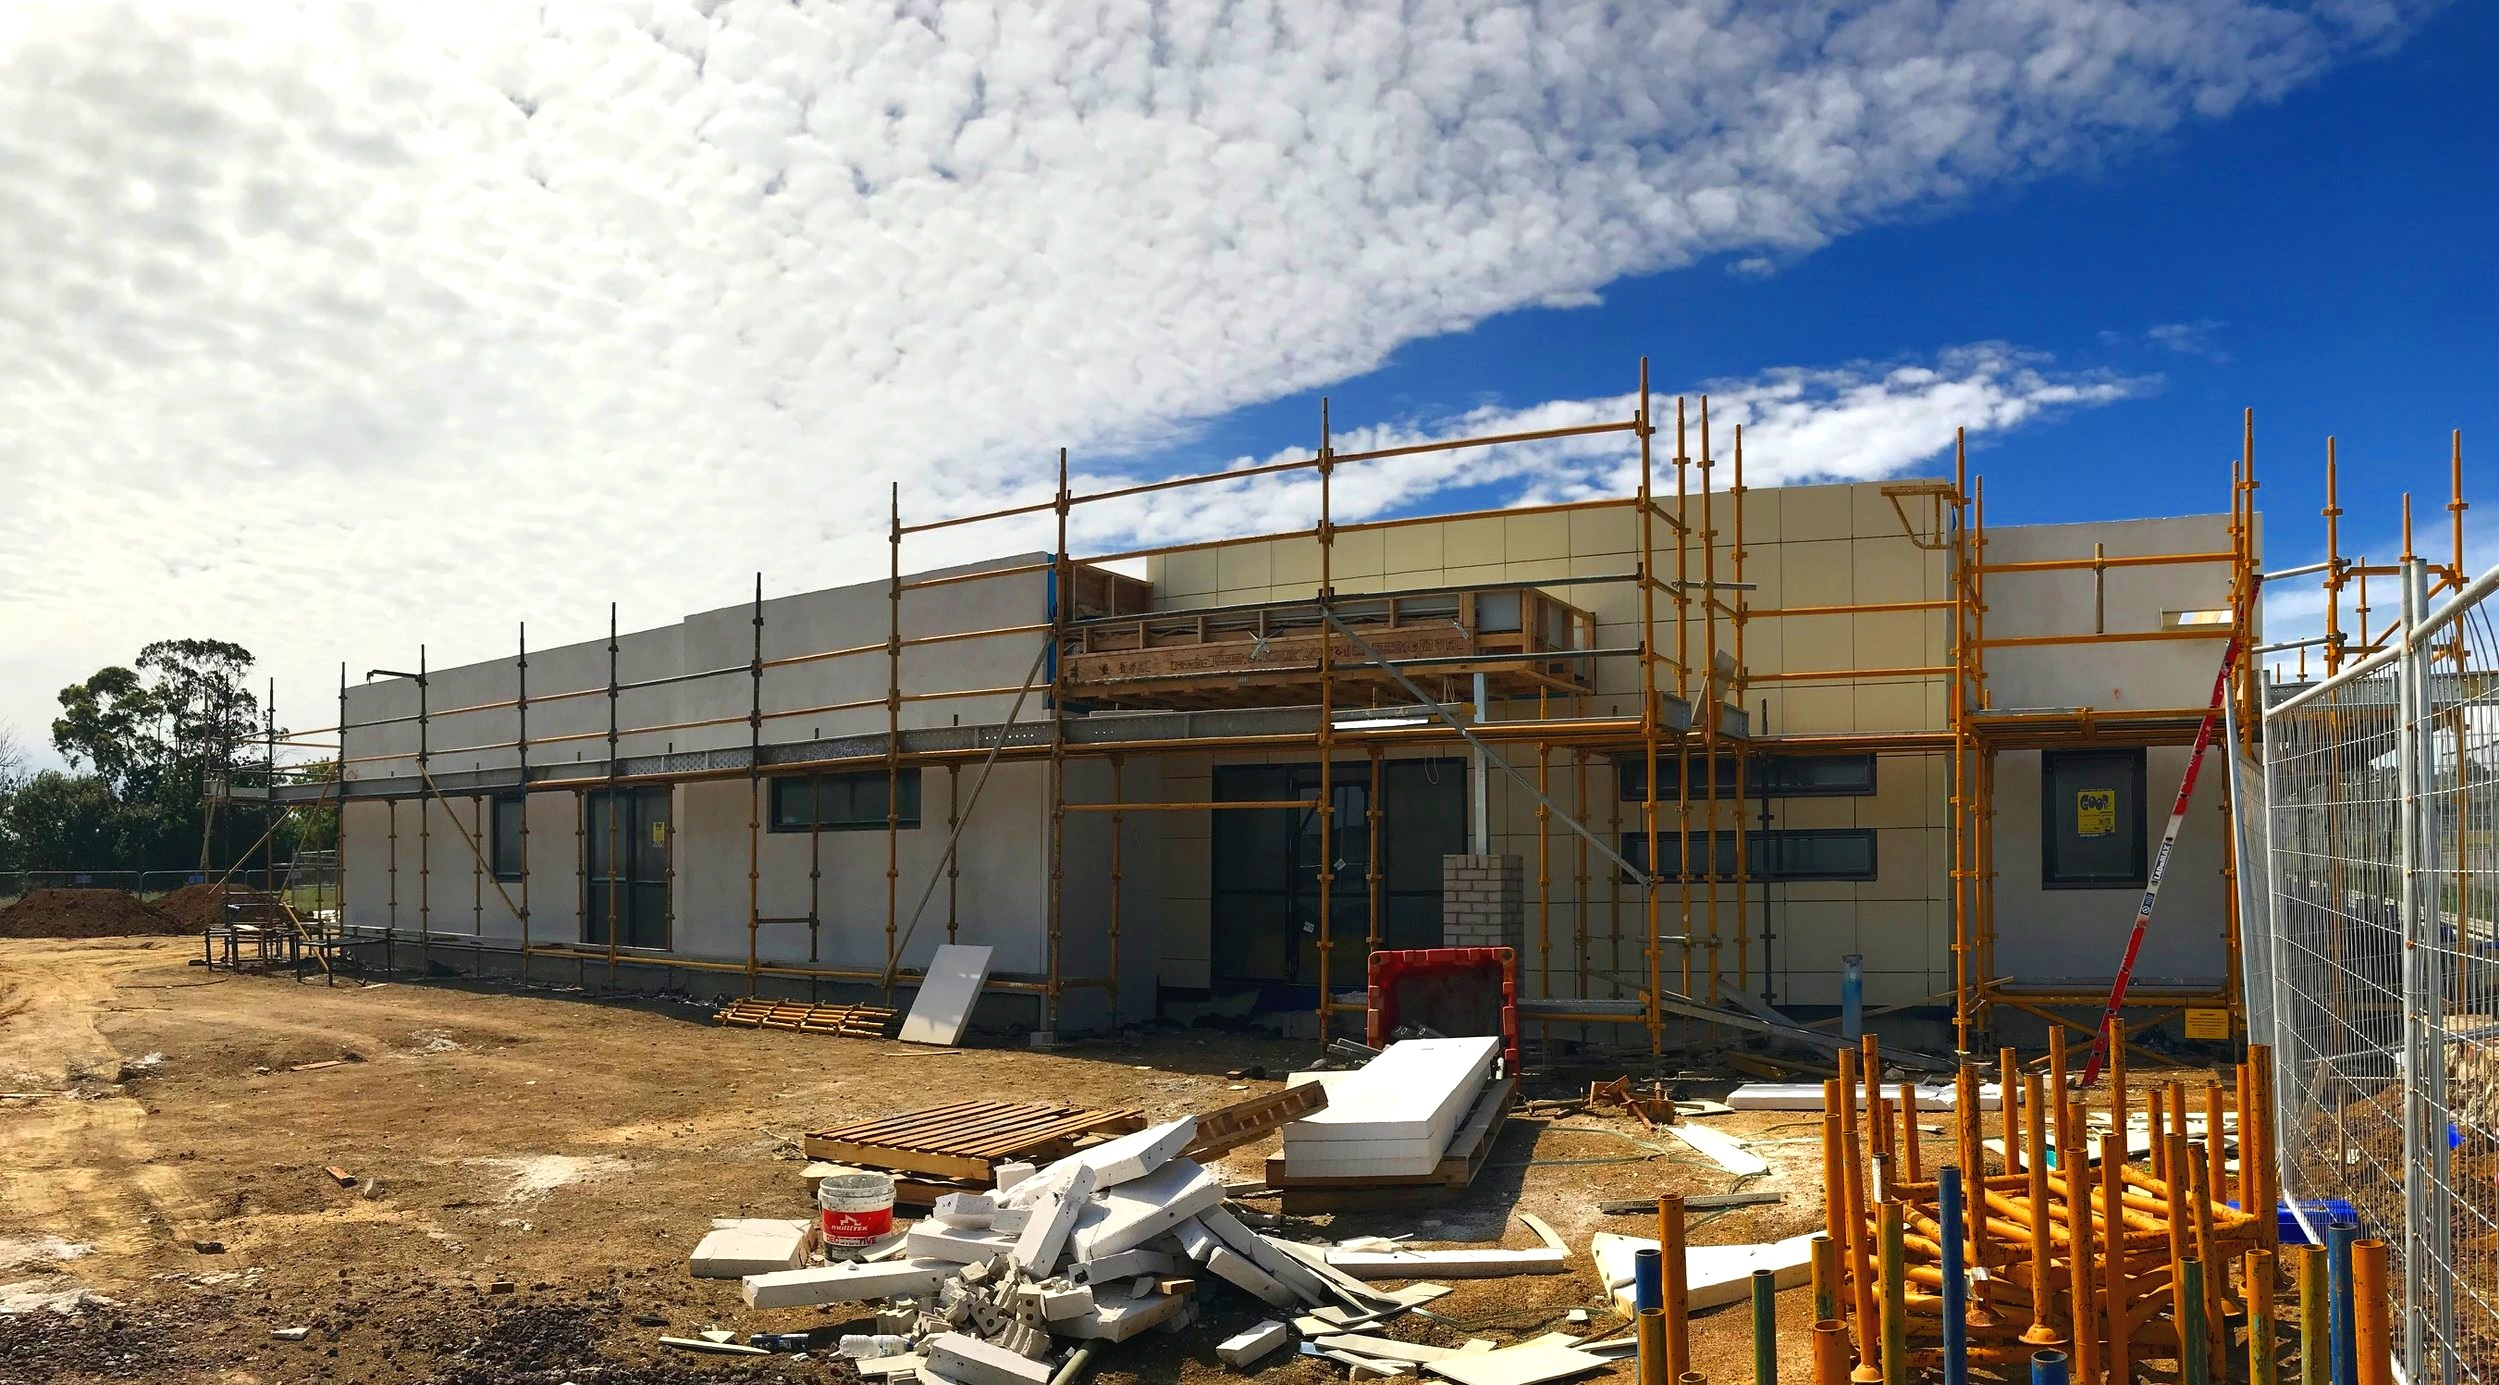 Kids on aspen - 08/01/19The windows are in and the facade is being clad. So much excitement out on our site. Not long now!